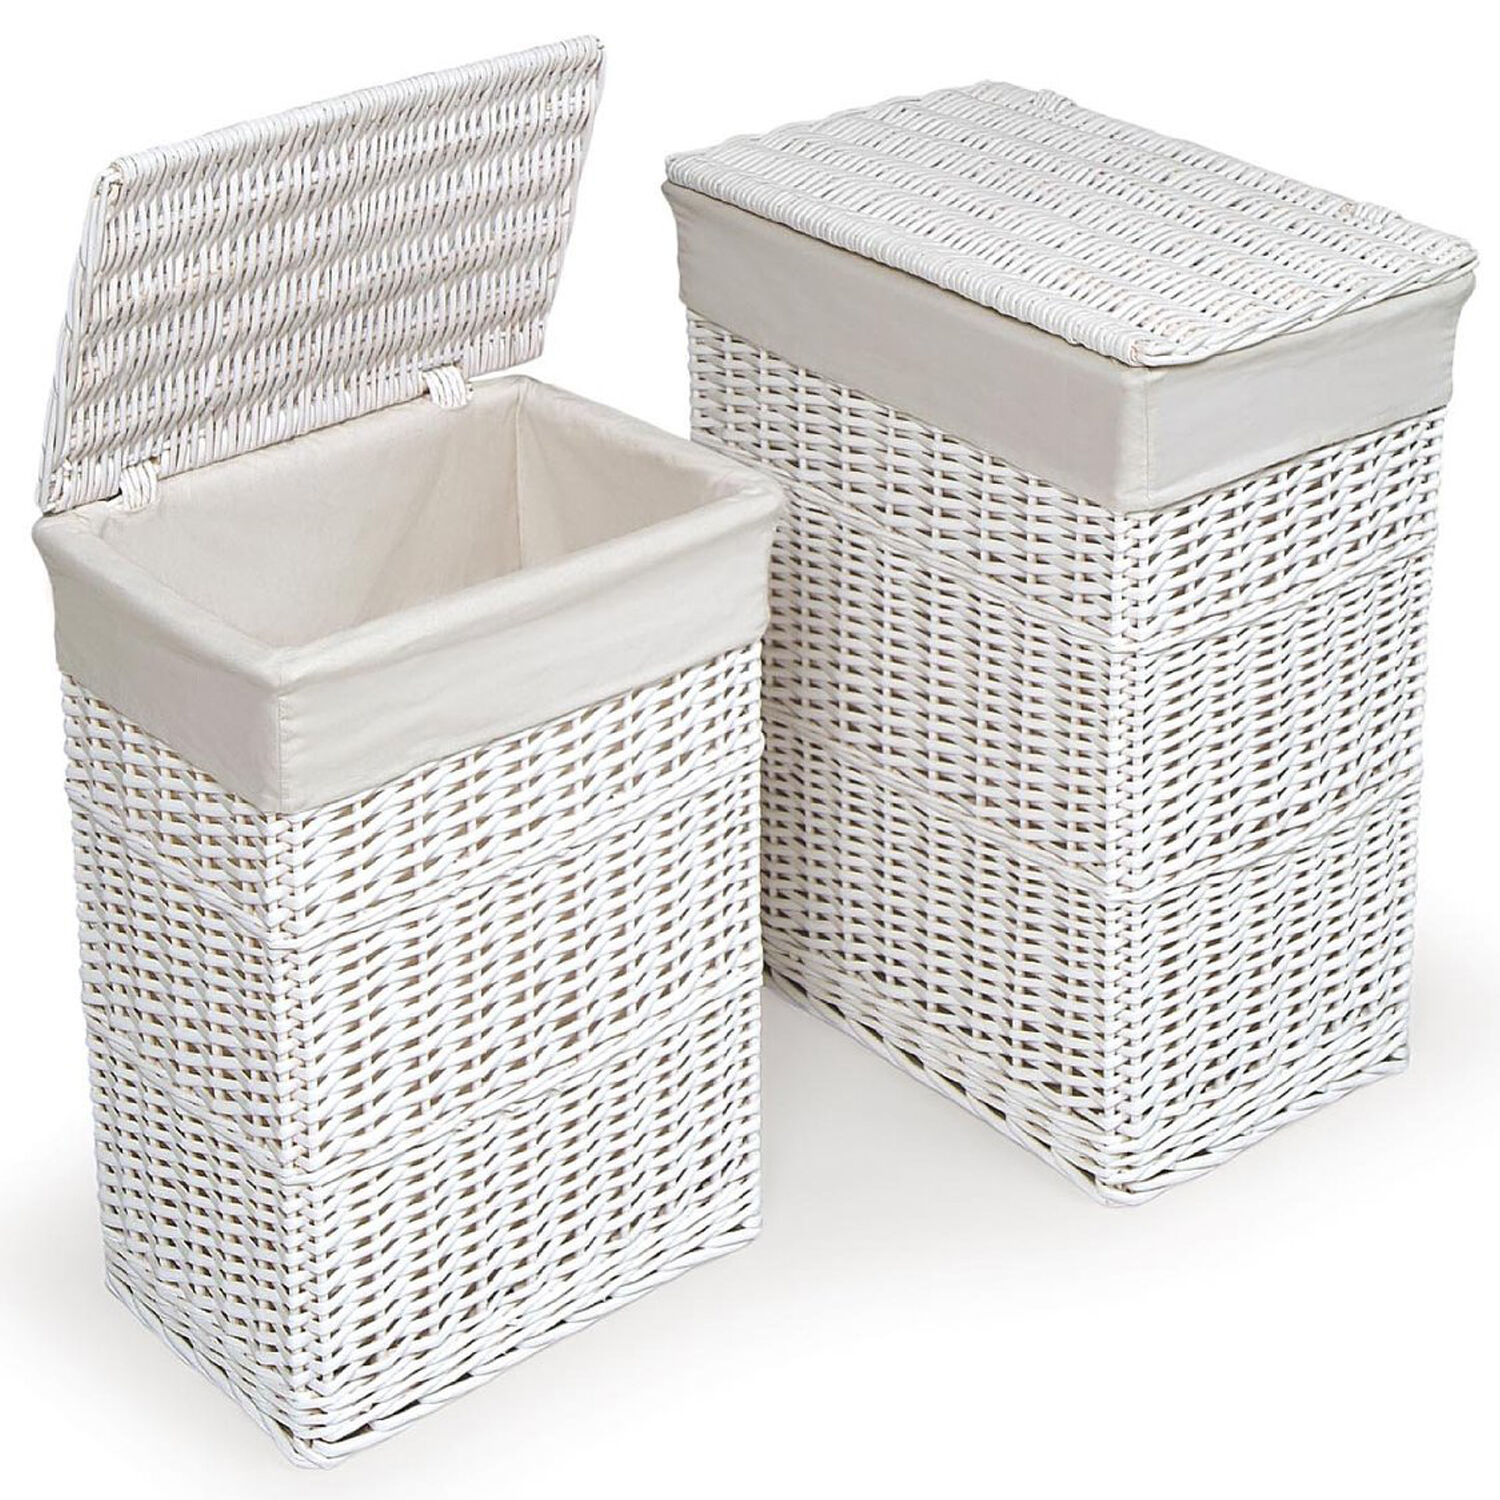 Large medium rectangular white wicker laundry basket w White wicker washing basket